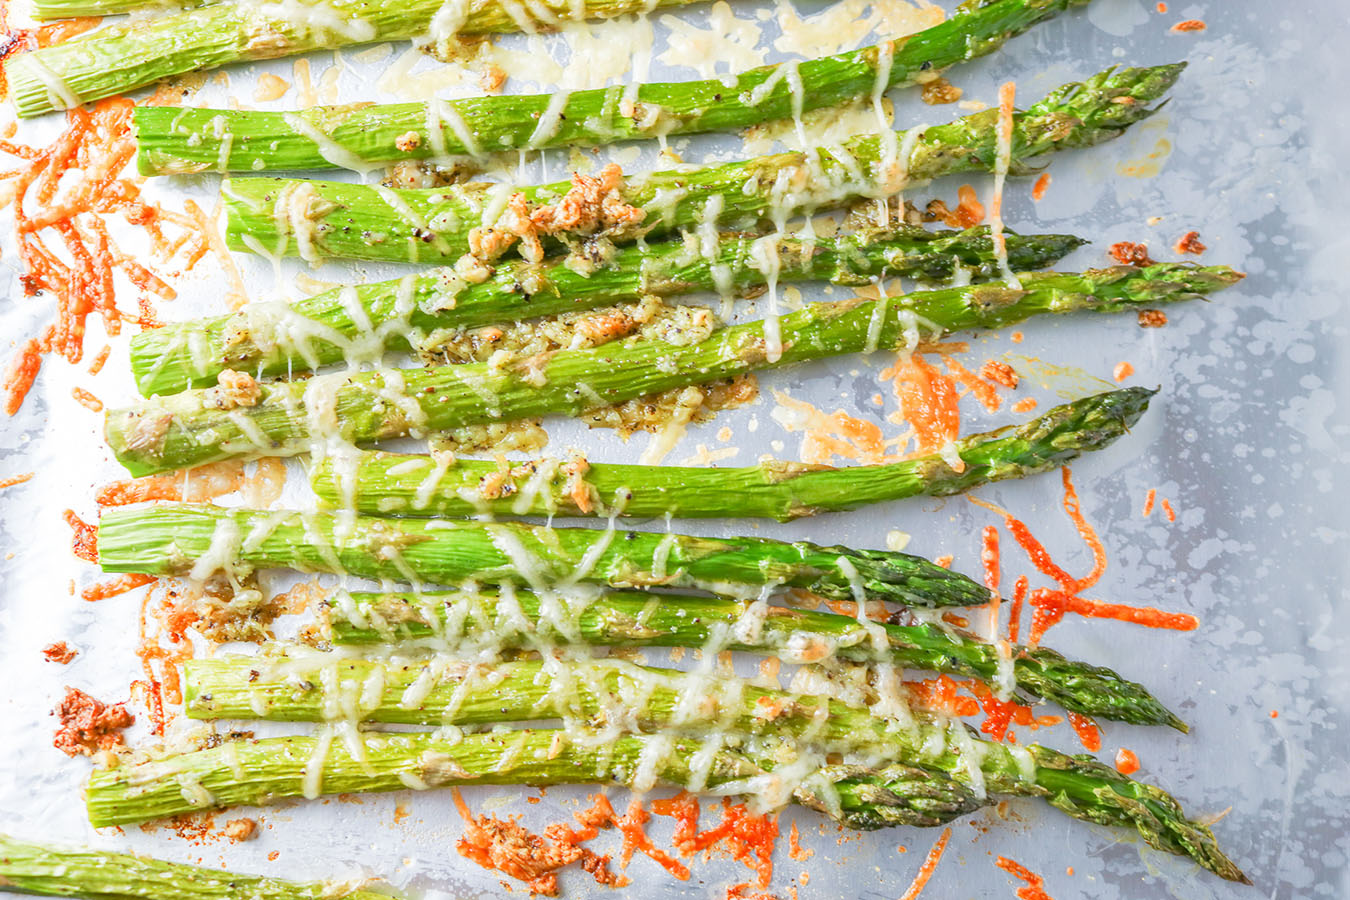 Think healthy has to mean boring? Absolutely not! This Roasted Parmesan Garlic Asparagus is quick, easy and delicious. A perfect side dish for one or more! | NOMaste Kitchen